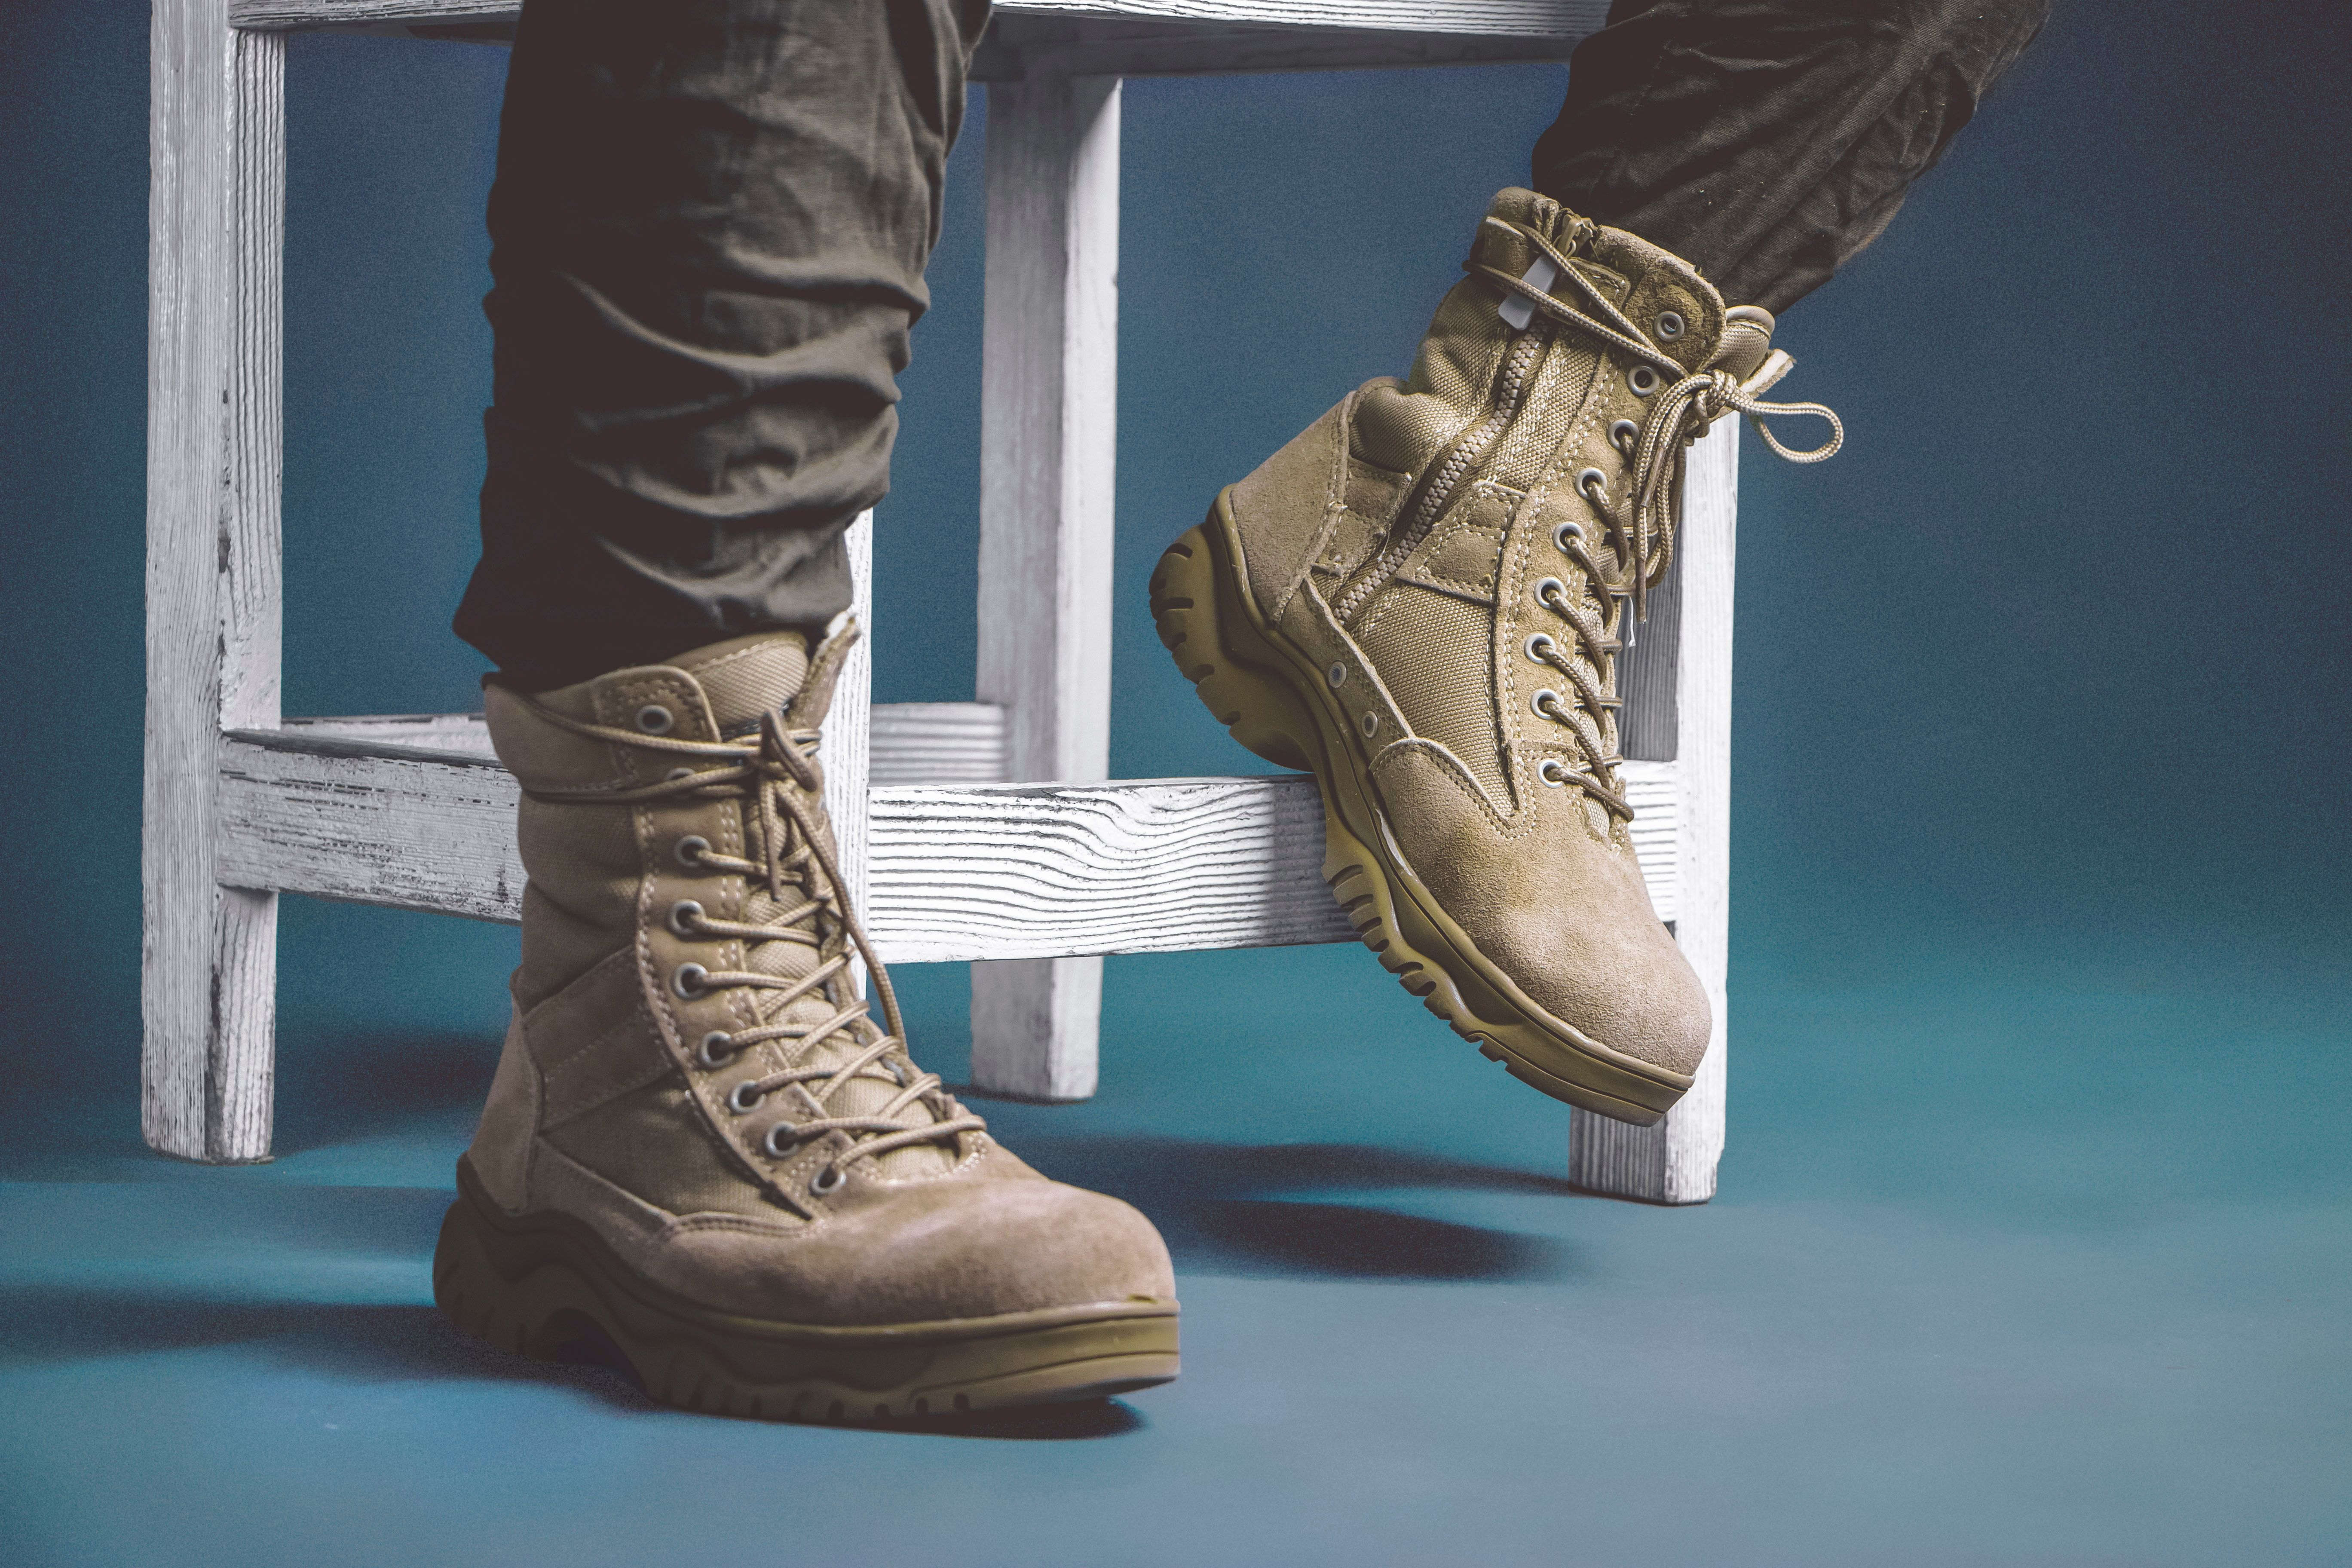 The 7 Best Summer Work Boots Ventilated Breathable Perfect For Hot Weather Sportsly Good Work Boots Combat Boots Summer Work Boots